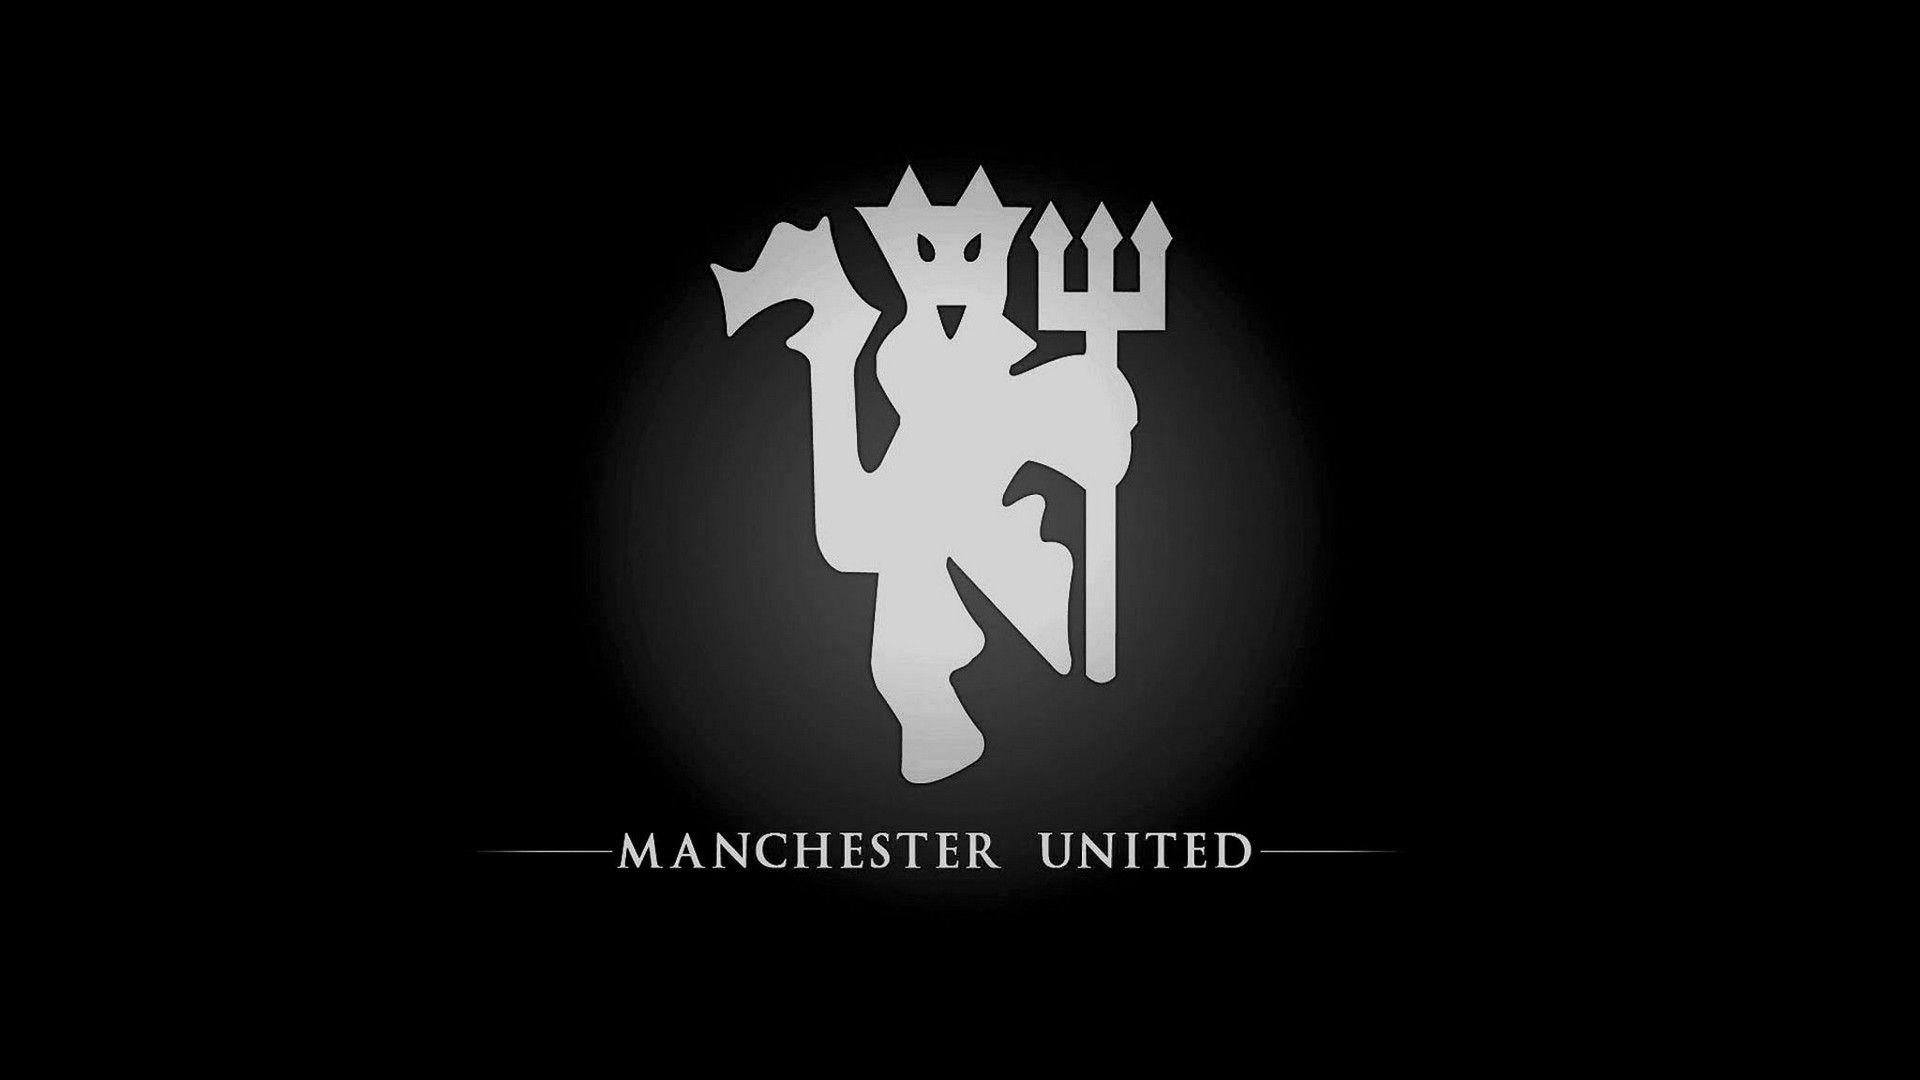 Wallpapers Manchester United Best Football Wallpaper Hd Manchester United Wallpaper Logo Wallpaper Hd Manchester United Logo